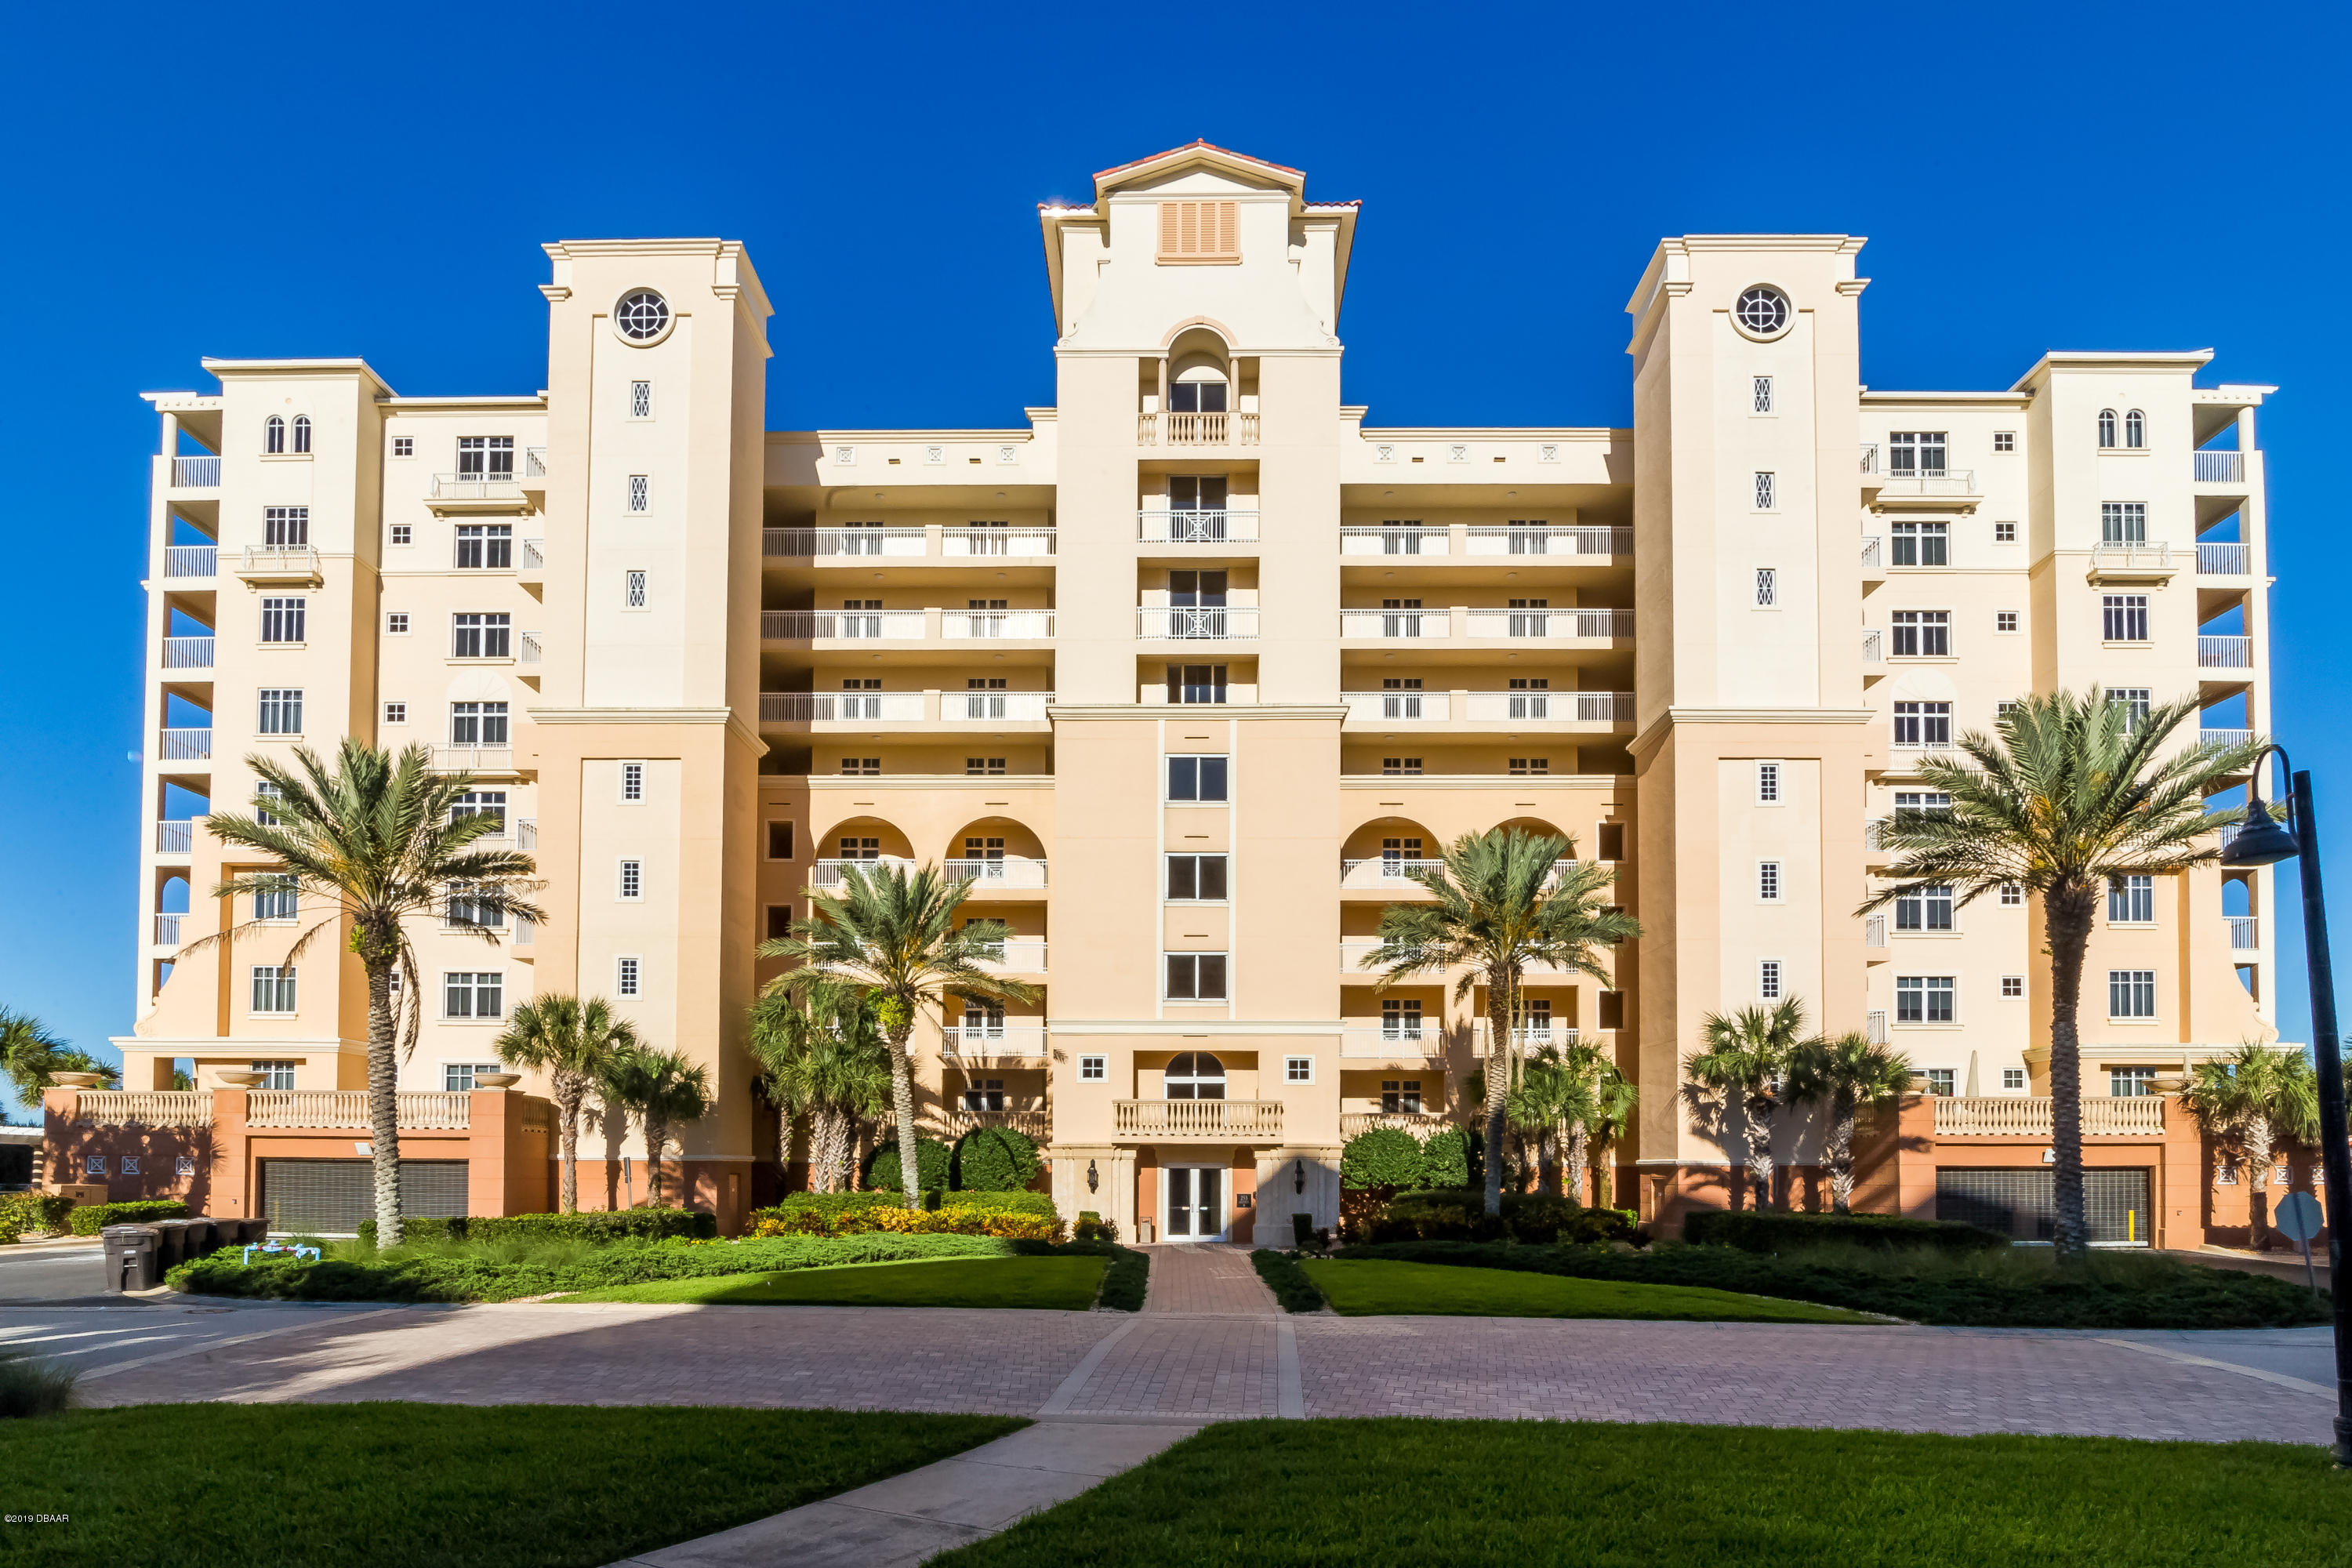 Photo of 253 Minorca Beach Way #206, New Smyrna Beach, FL 32169